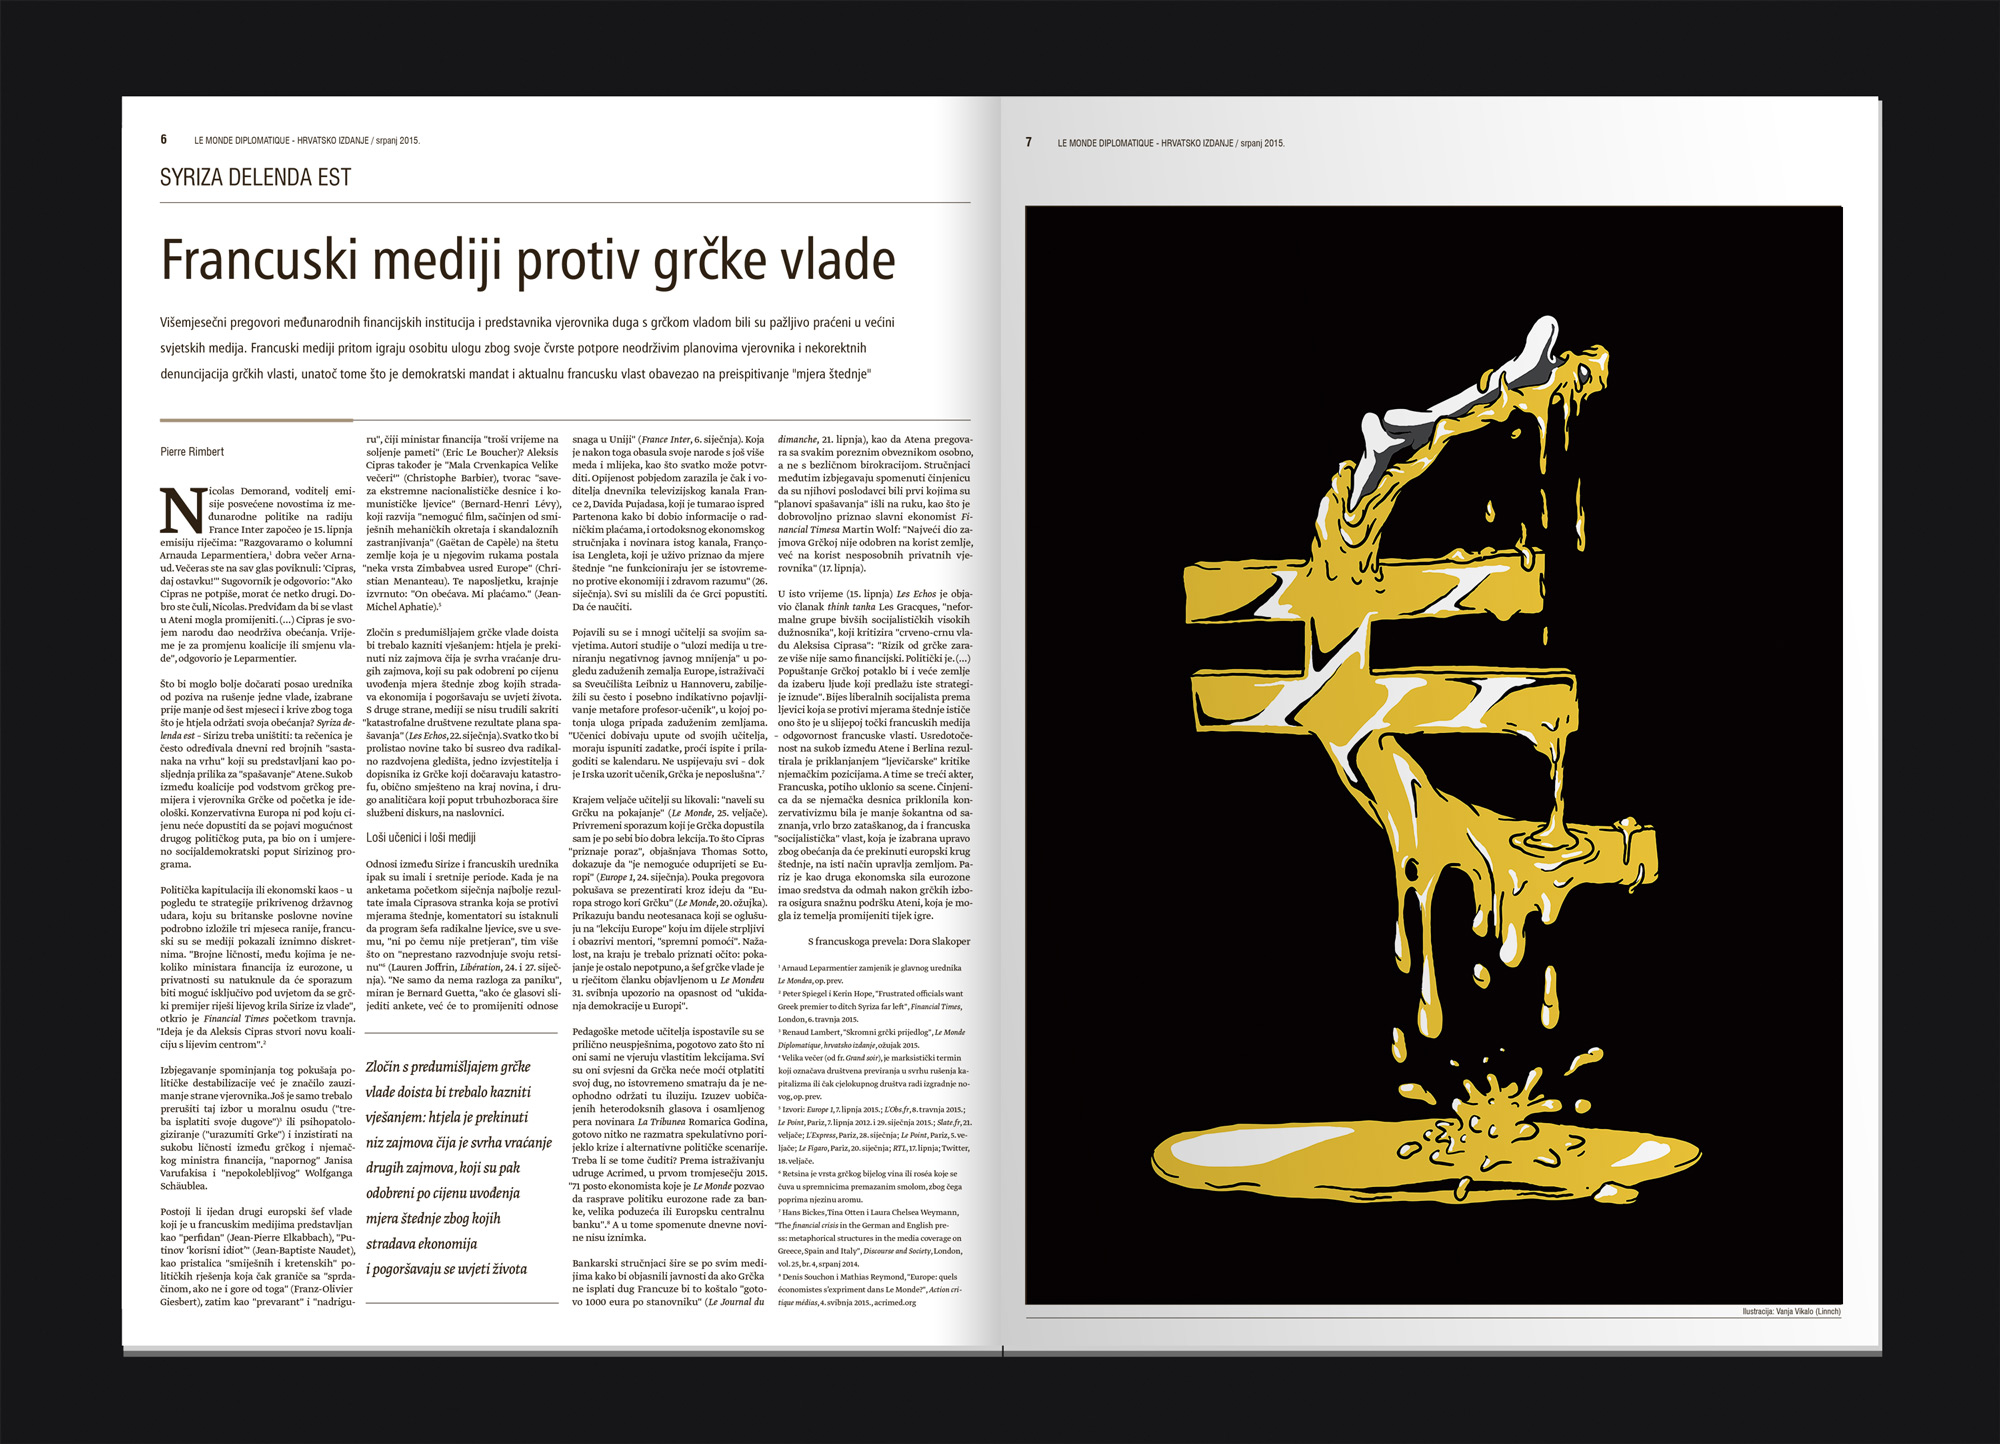 Le Monde Diplomatique Editorial illustration Linnch